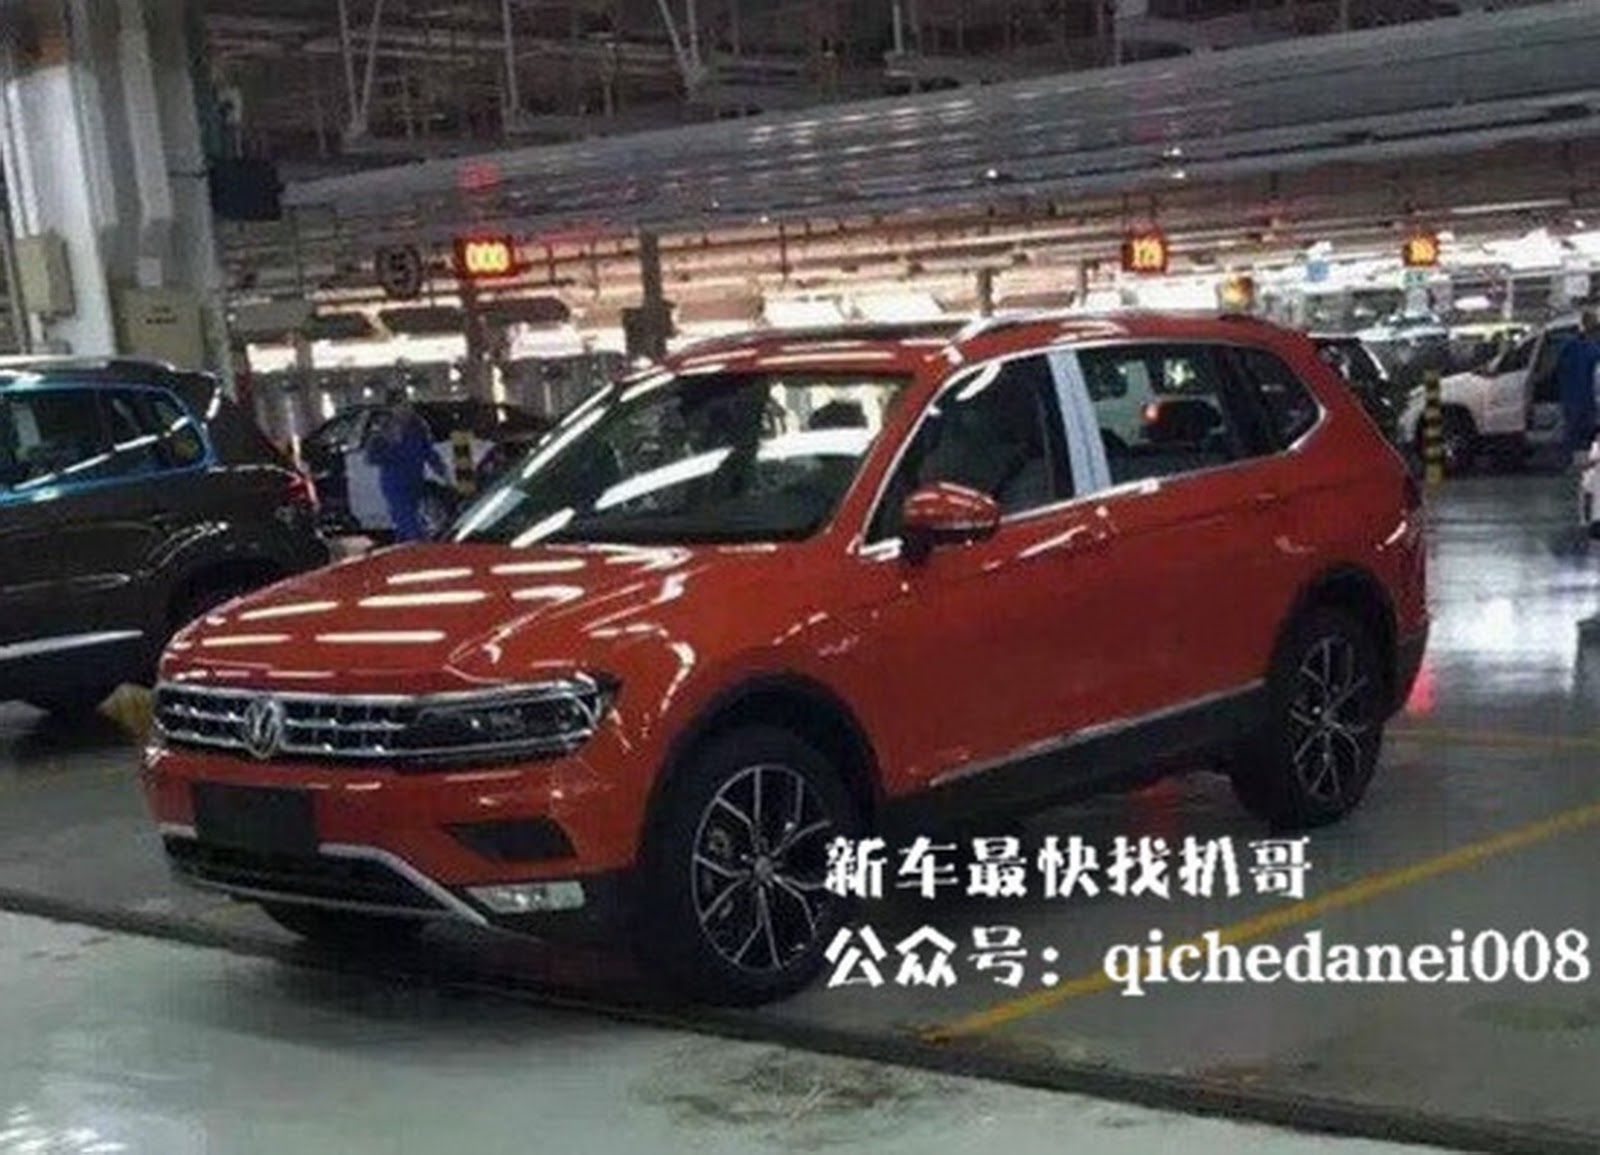 2017 Volkswagen Tiguan Xl Sned By The Carparazzi In China